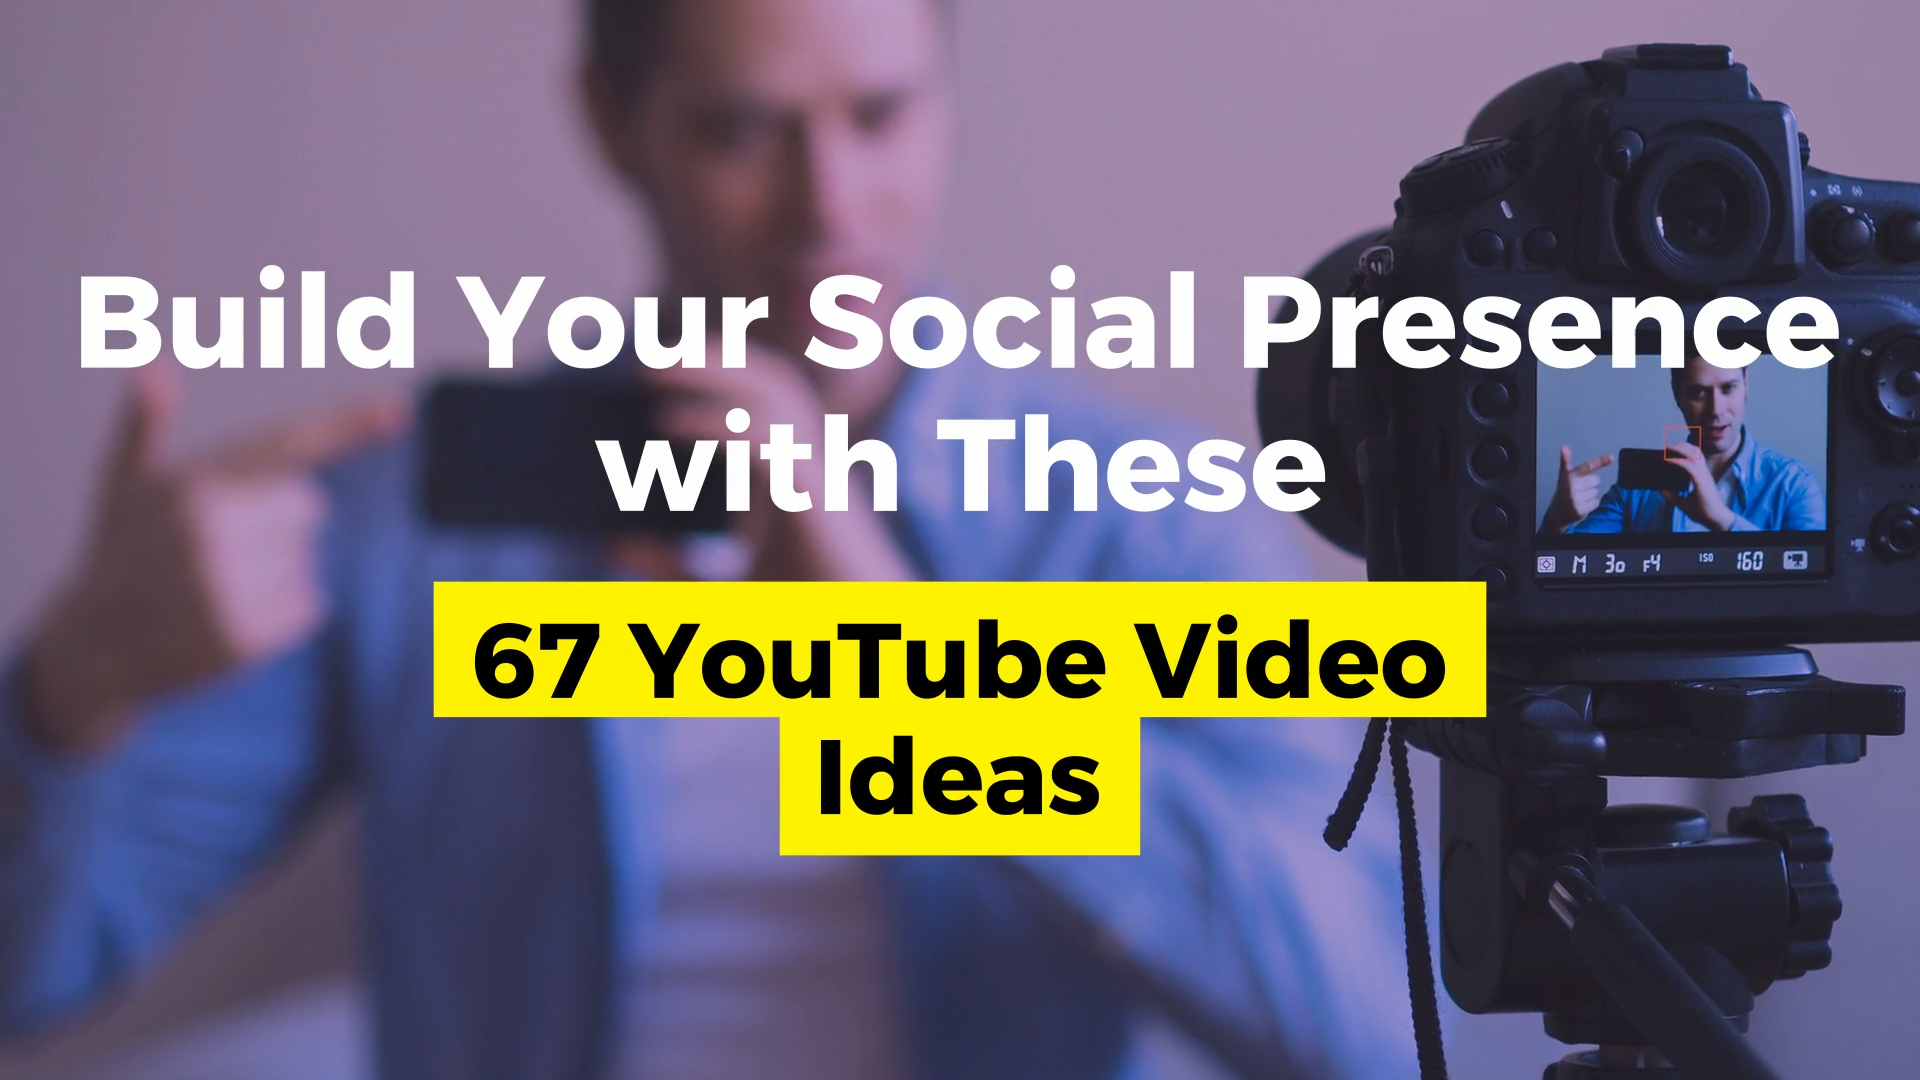 67 YouTube Video Ideas